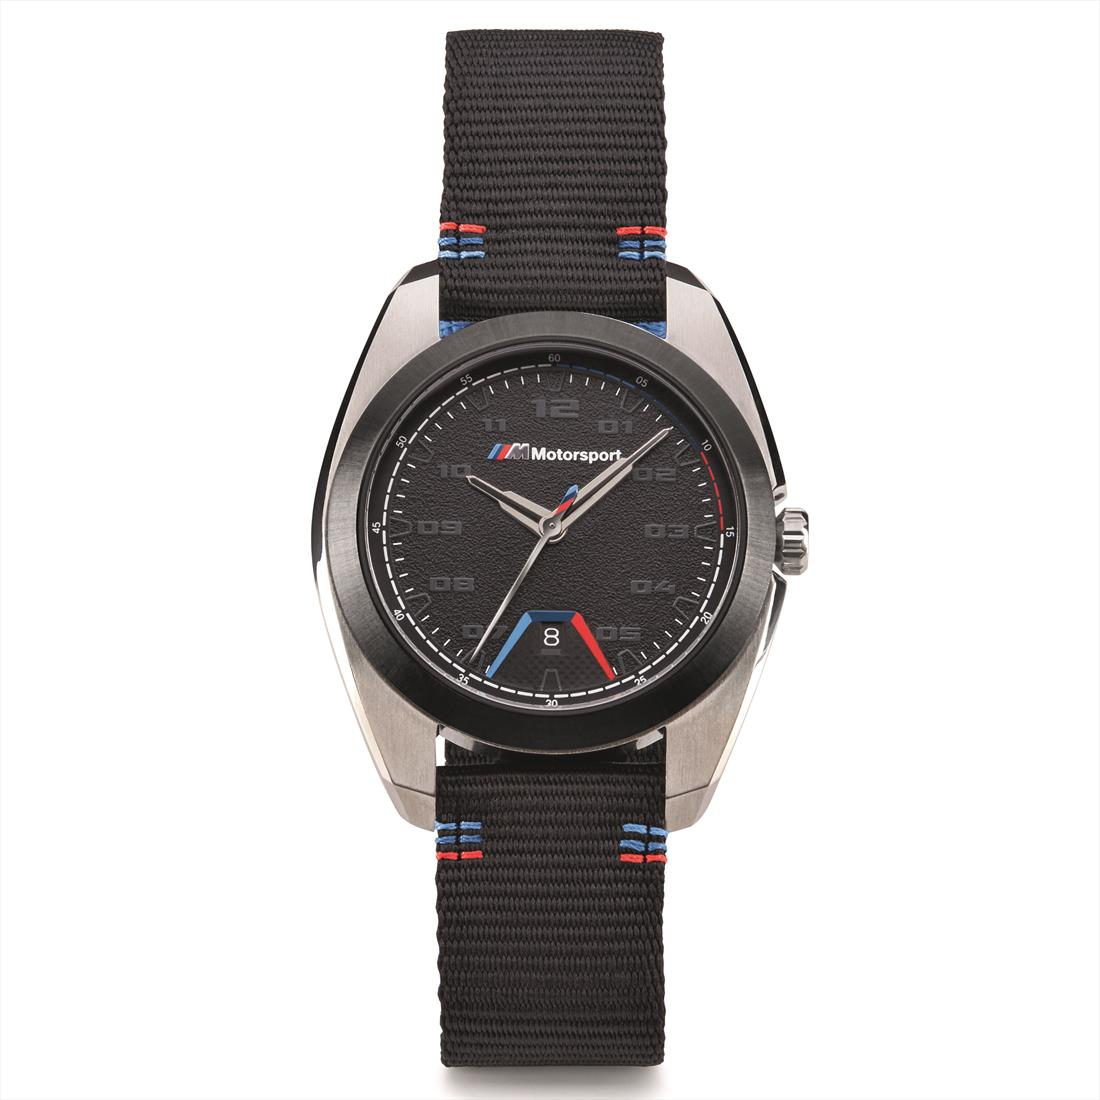 BMW Motorsport Men's Watch